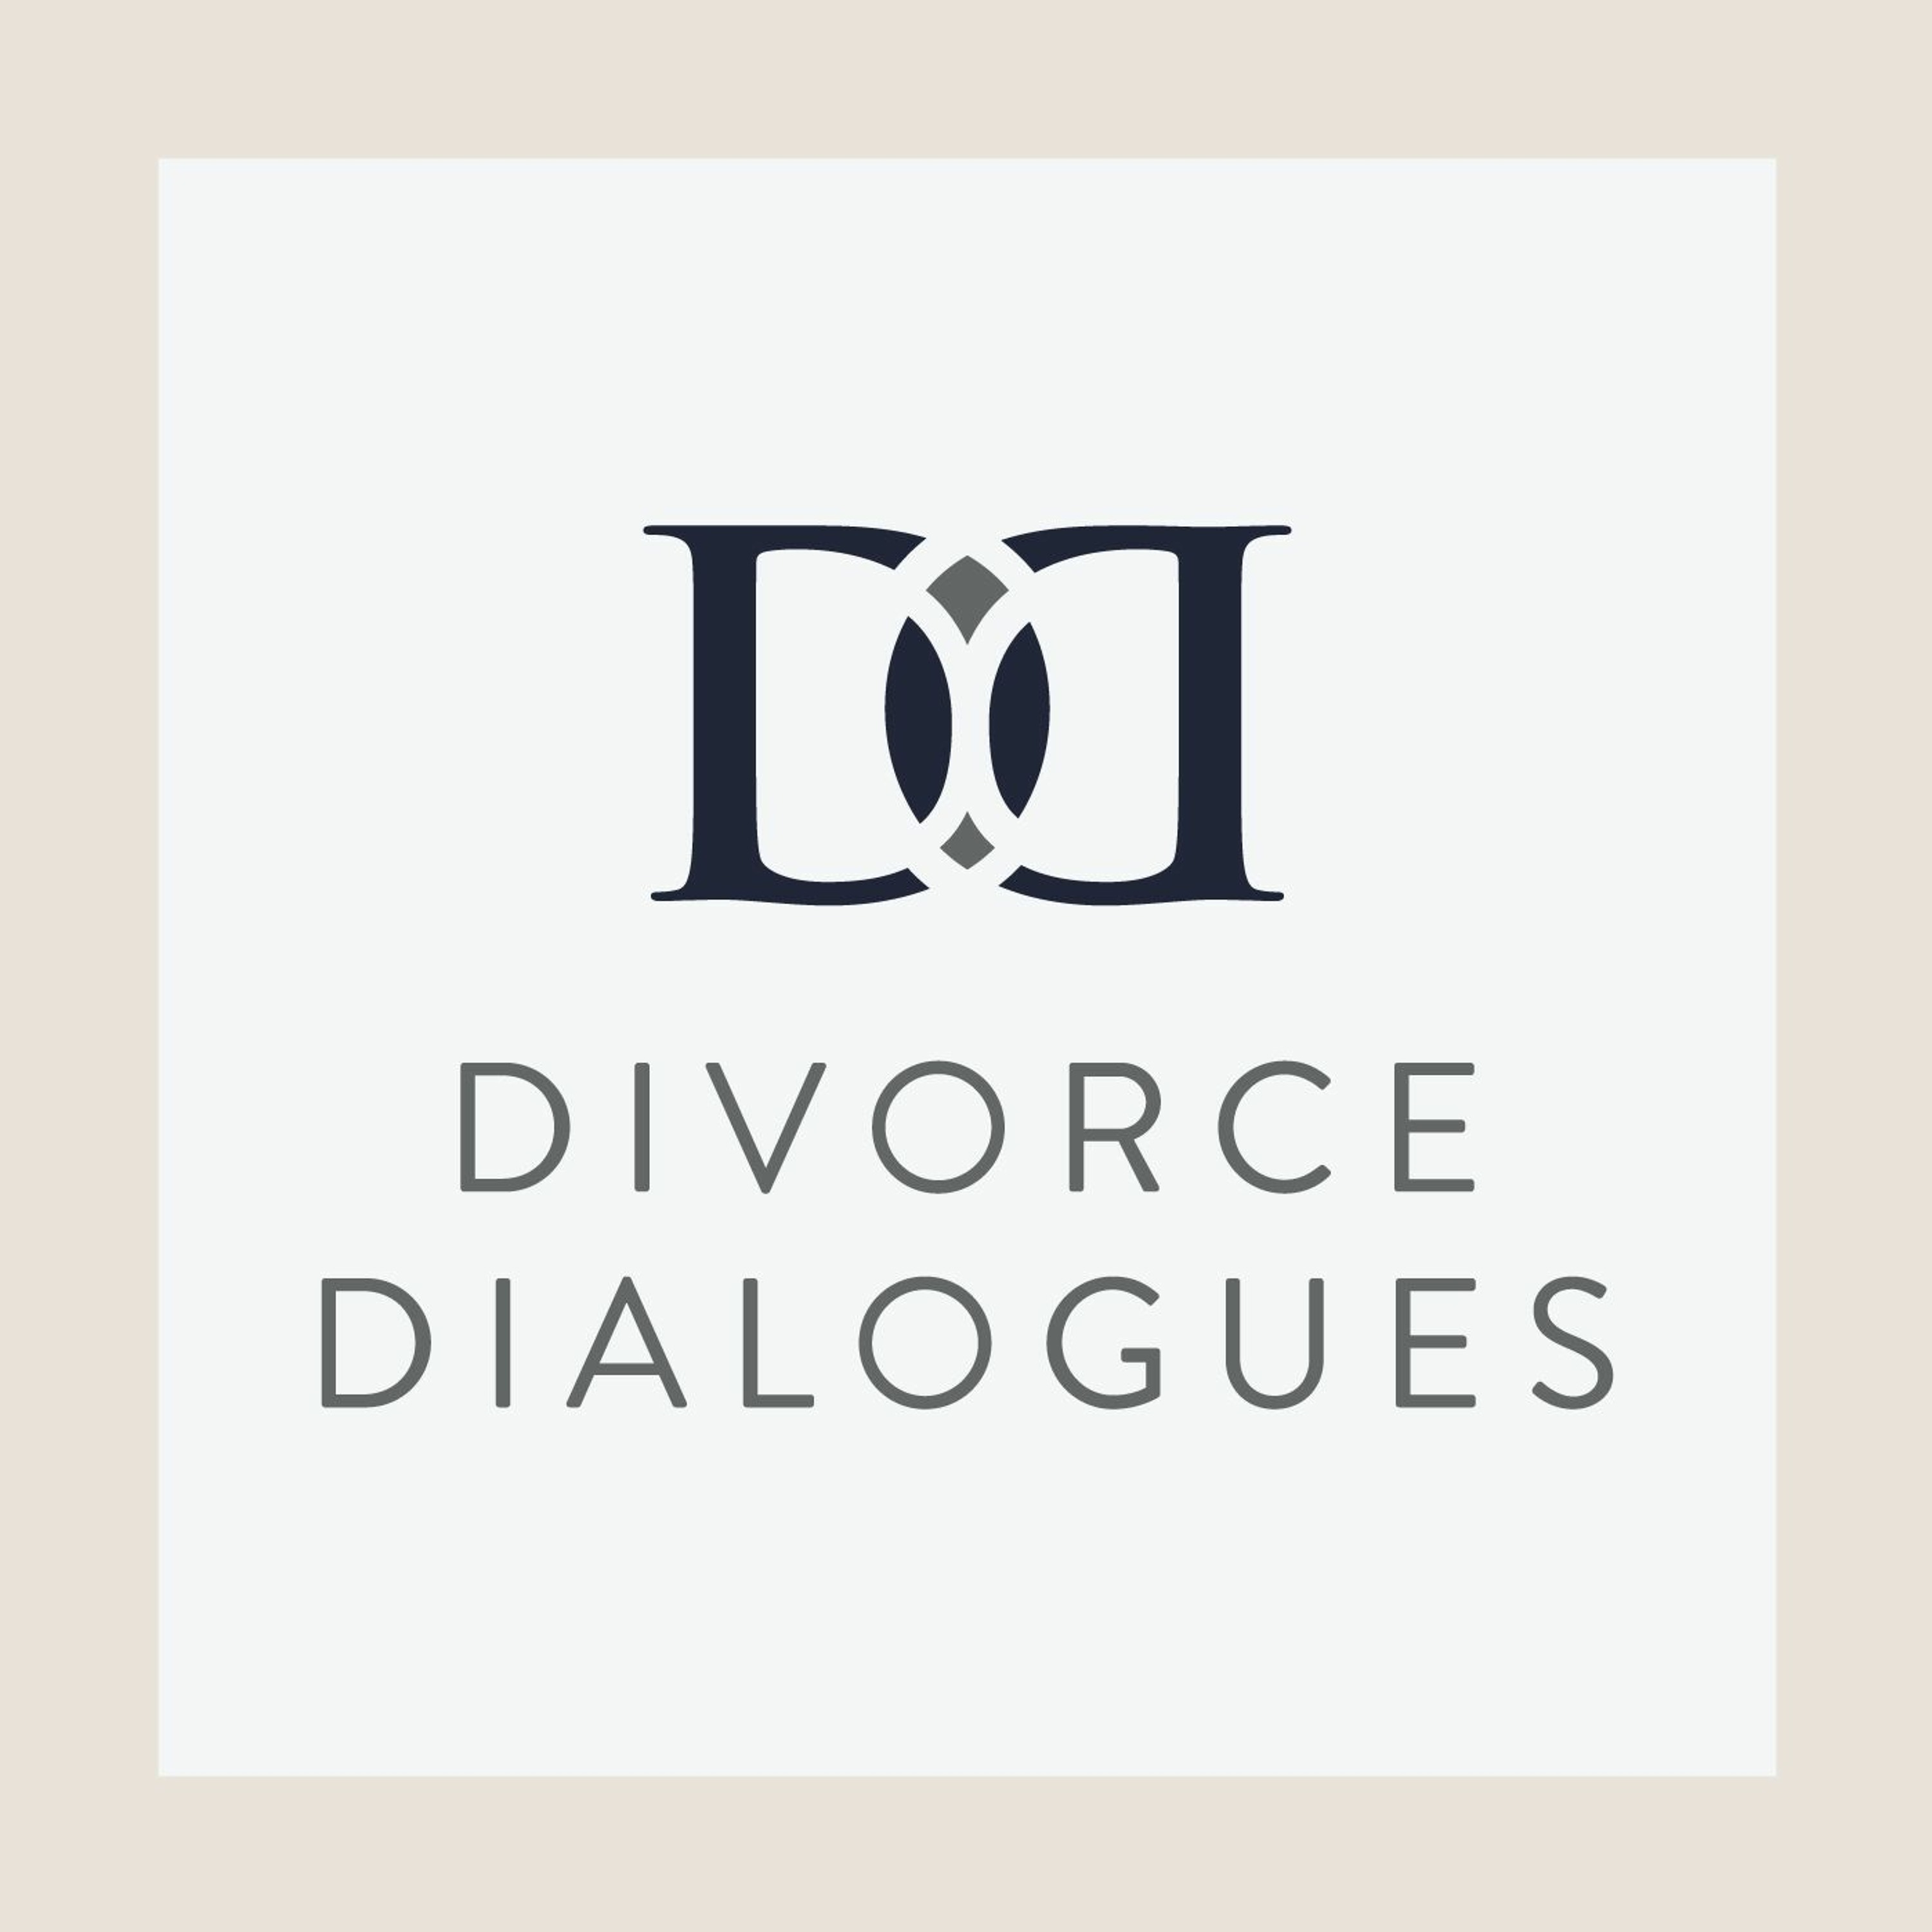 Divorce Dialogues - The Lawyer as Peacemaker with David Hoffman